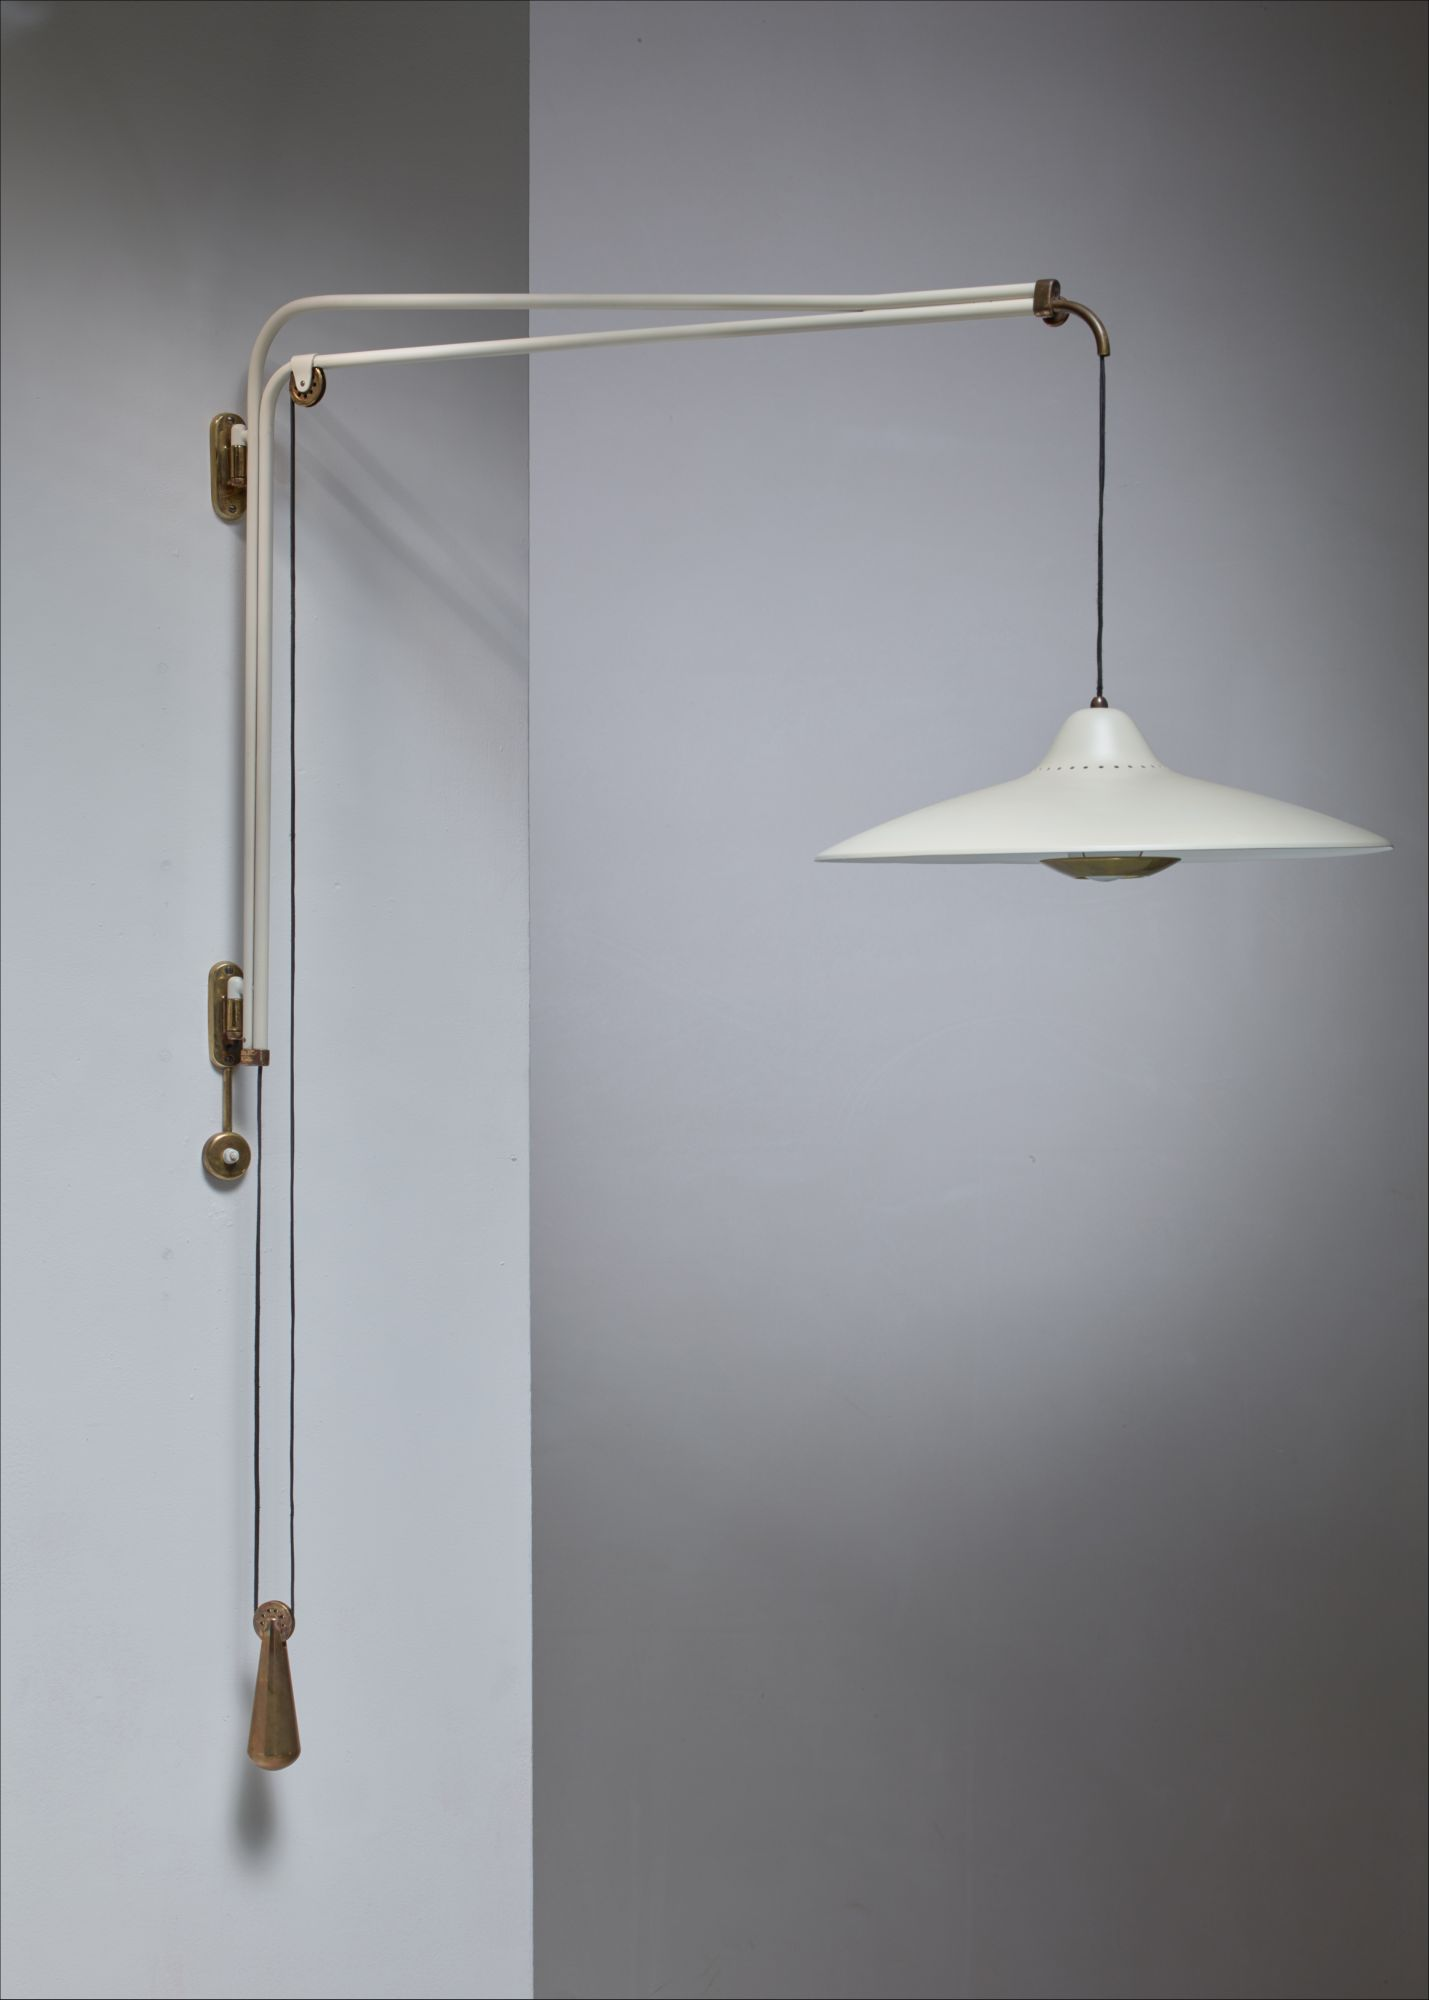 Buzzi & Buzzi Lighting franco buzzi jib style wall lamp for o-luce, italy, 1950s